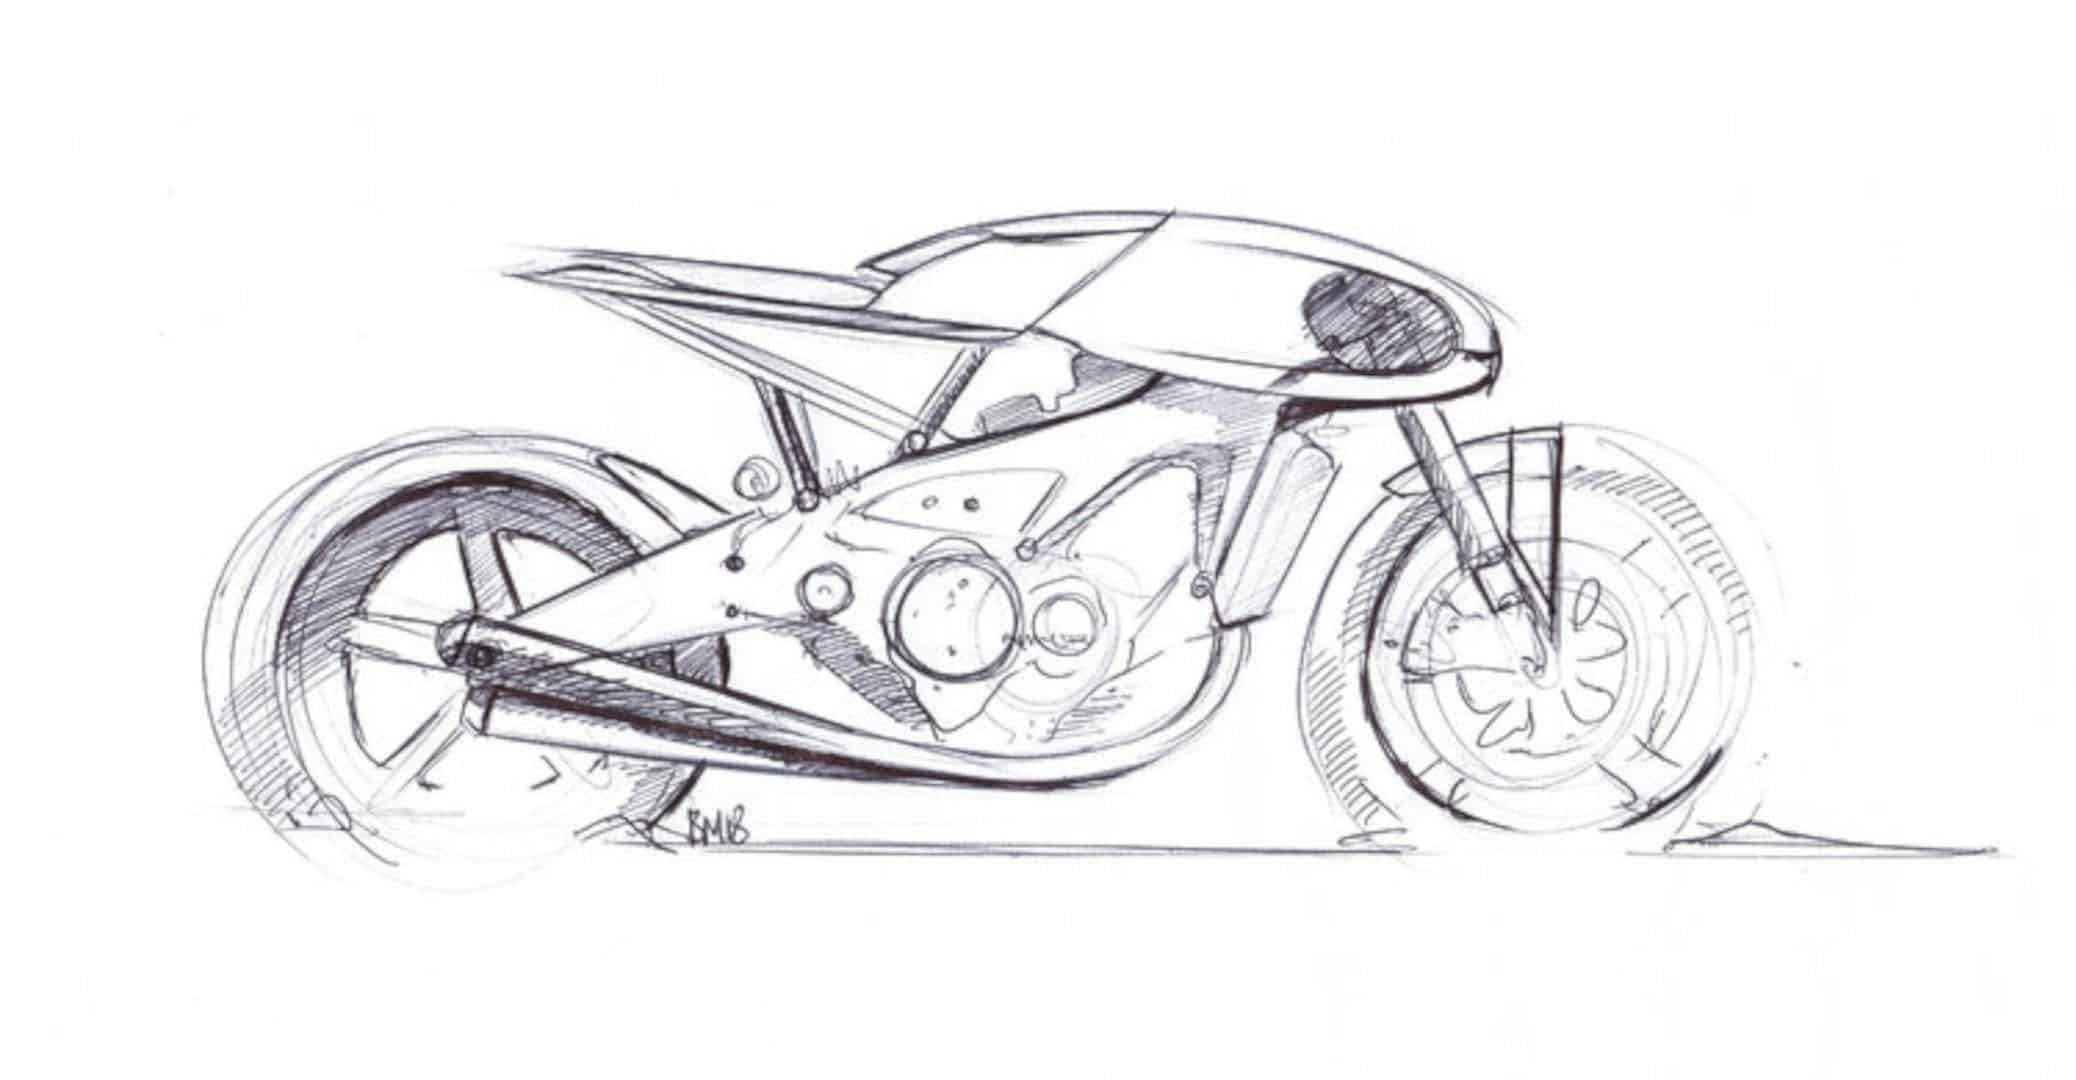 The Type 11 Concept By Auto Fabrica 7